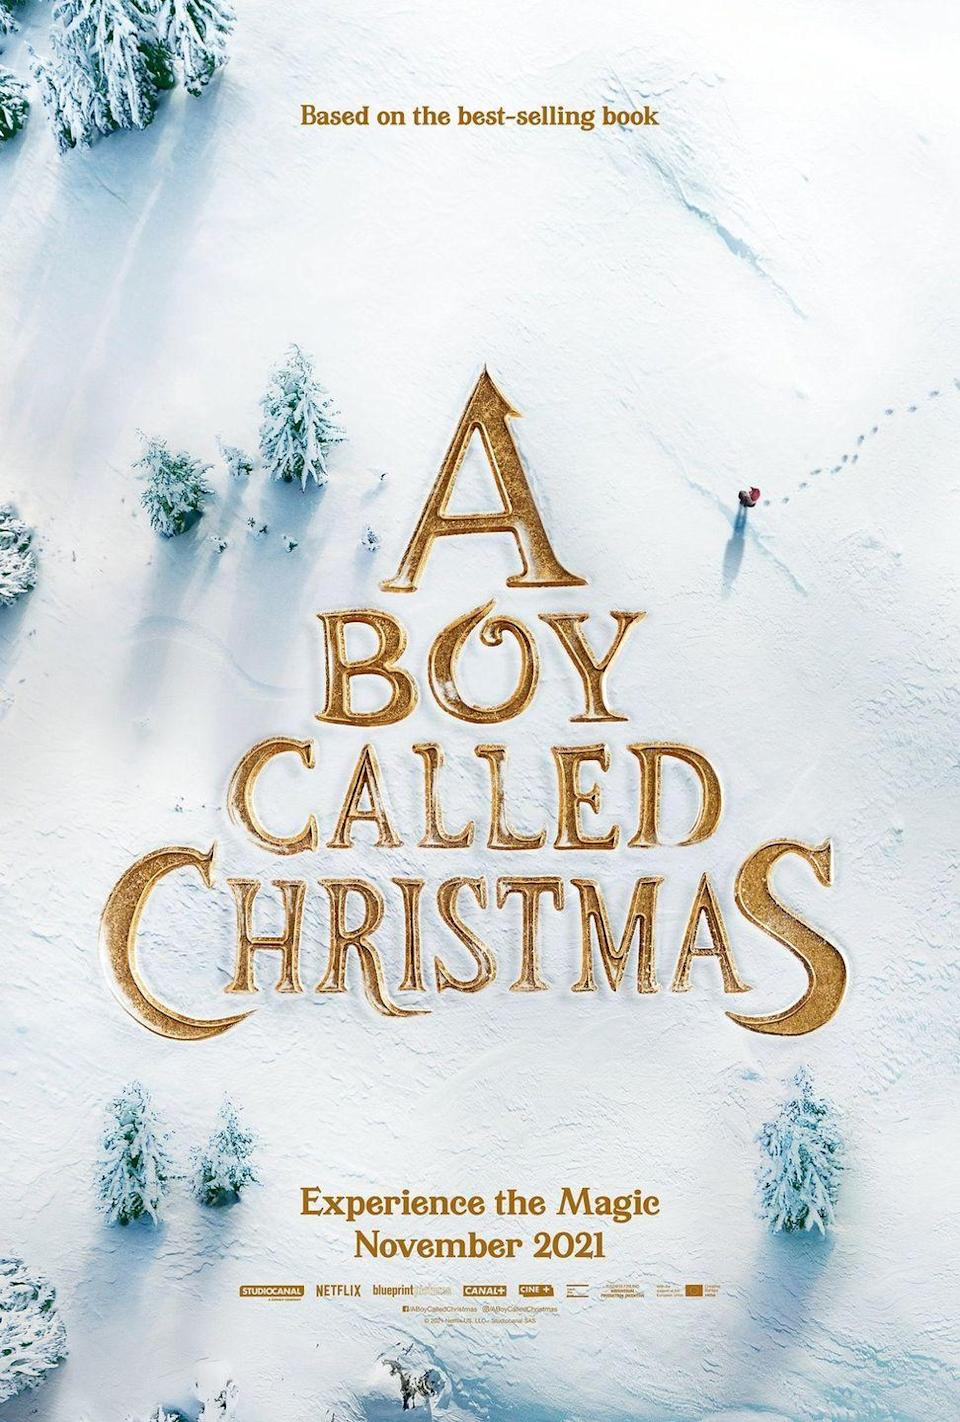 <p>After his father goes missing, a young boy named Nikolas must travel to the North Pole to save him—and maybe realize his destiny as a certain man in a red and white suit?—in this family-friendly film. Based on the book of the same name by Matt Haig, <em>A Boy Called Christmas</em> stars Henry Lawfull, Sally Hawkins, Kristen Wiig, and the always-a-joy-to-watch Maggie Smith.</p><p><strong>Premiering Winter 2021</strong></p>